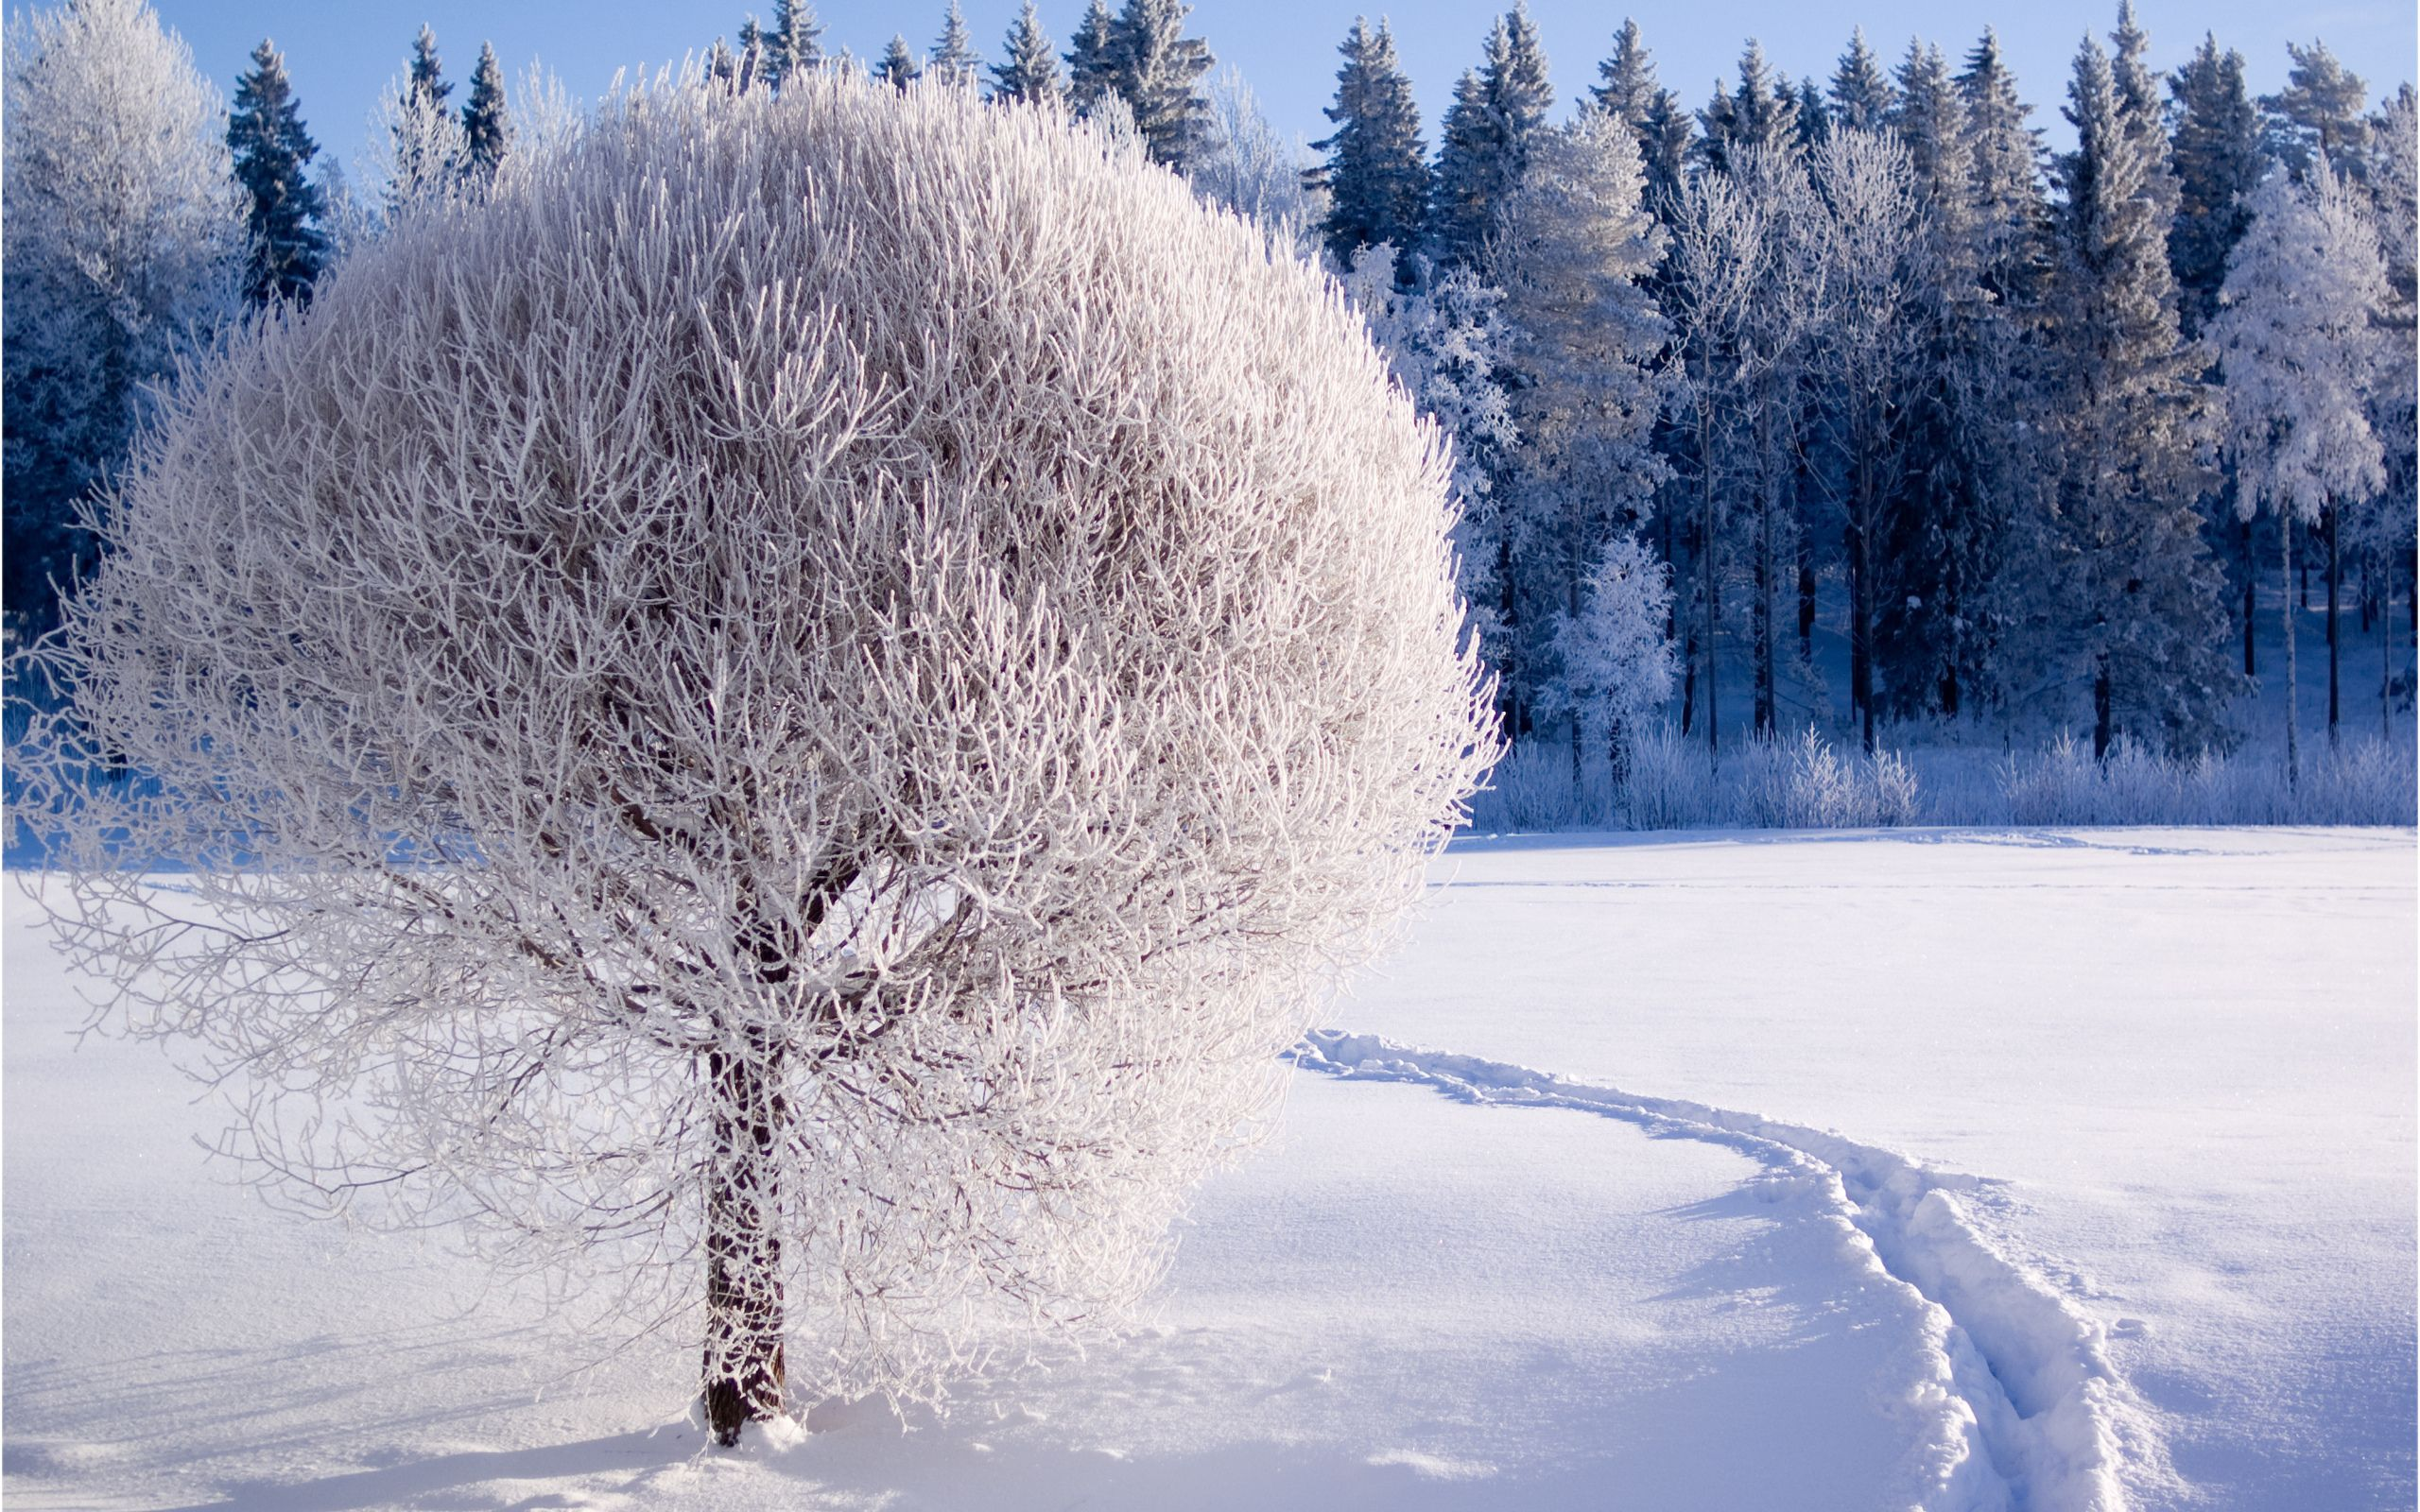 Winter Wallpapers Winter Wallpaper Hd Nature Wallpapers Winter Background